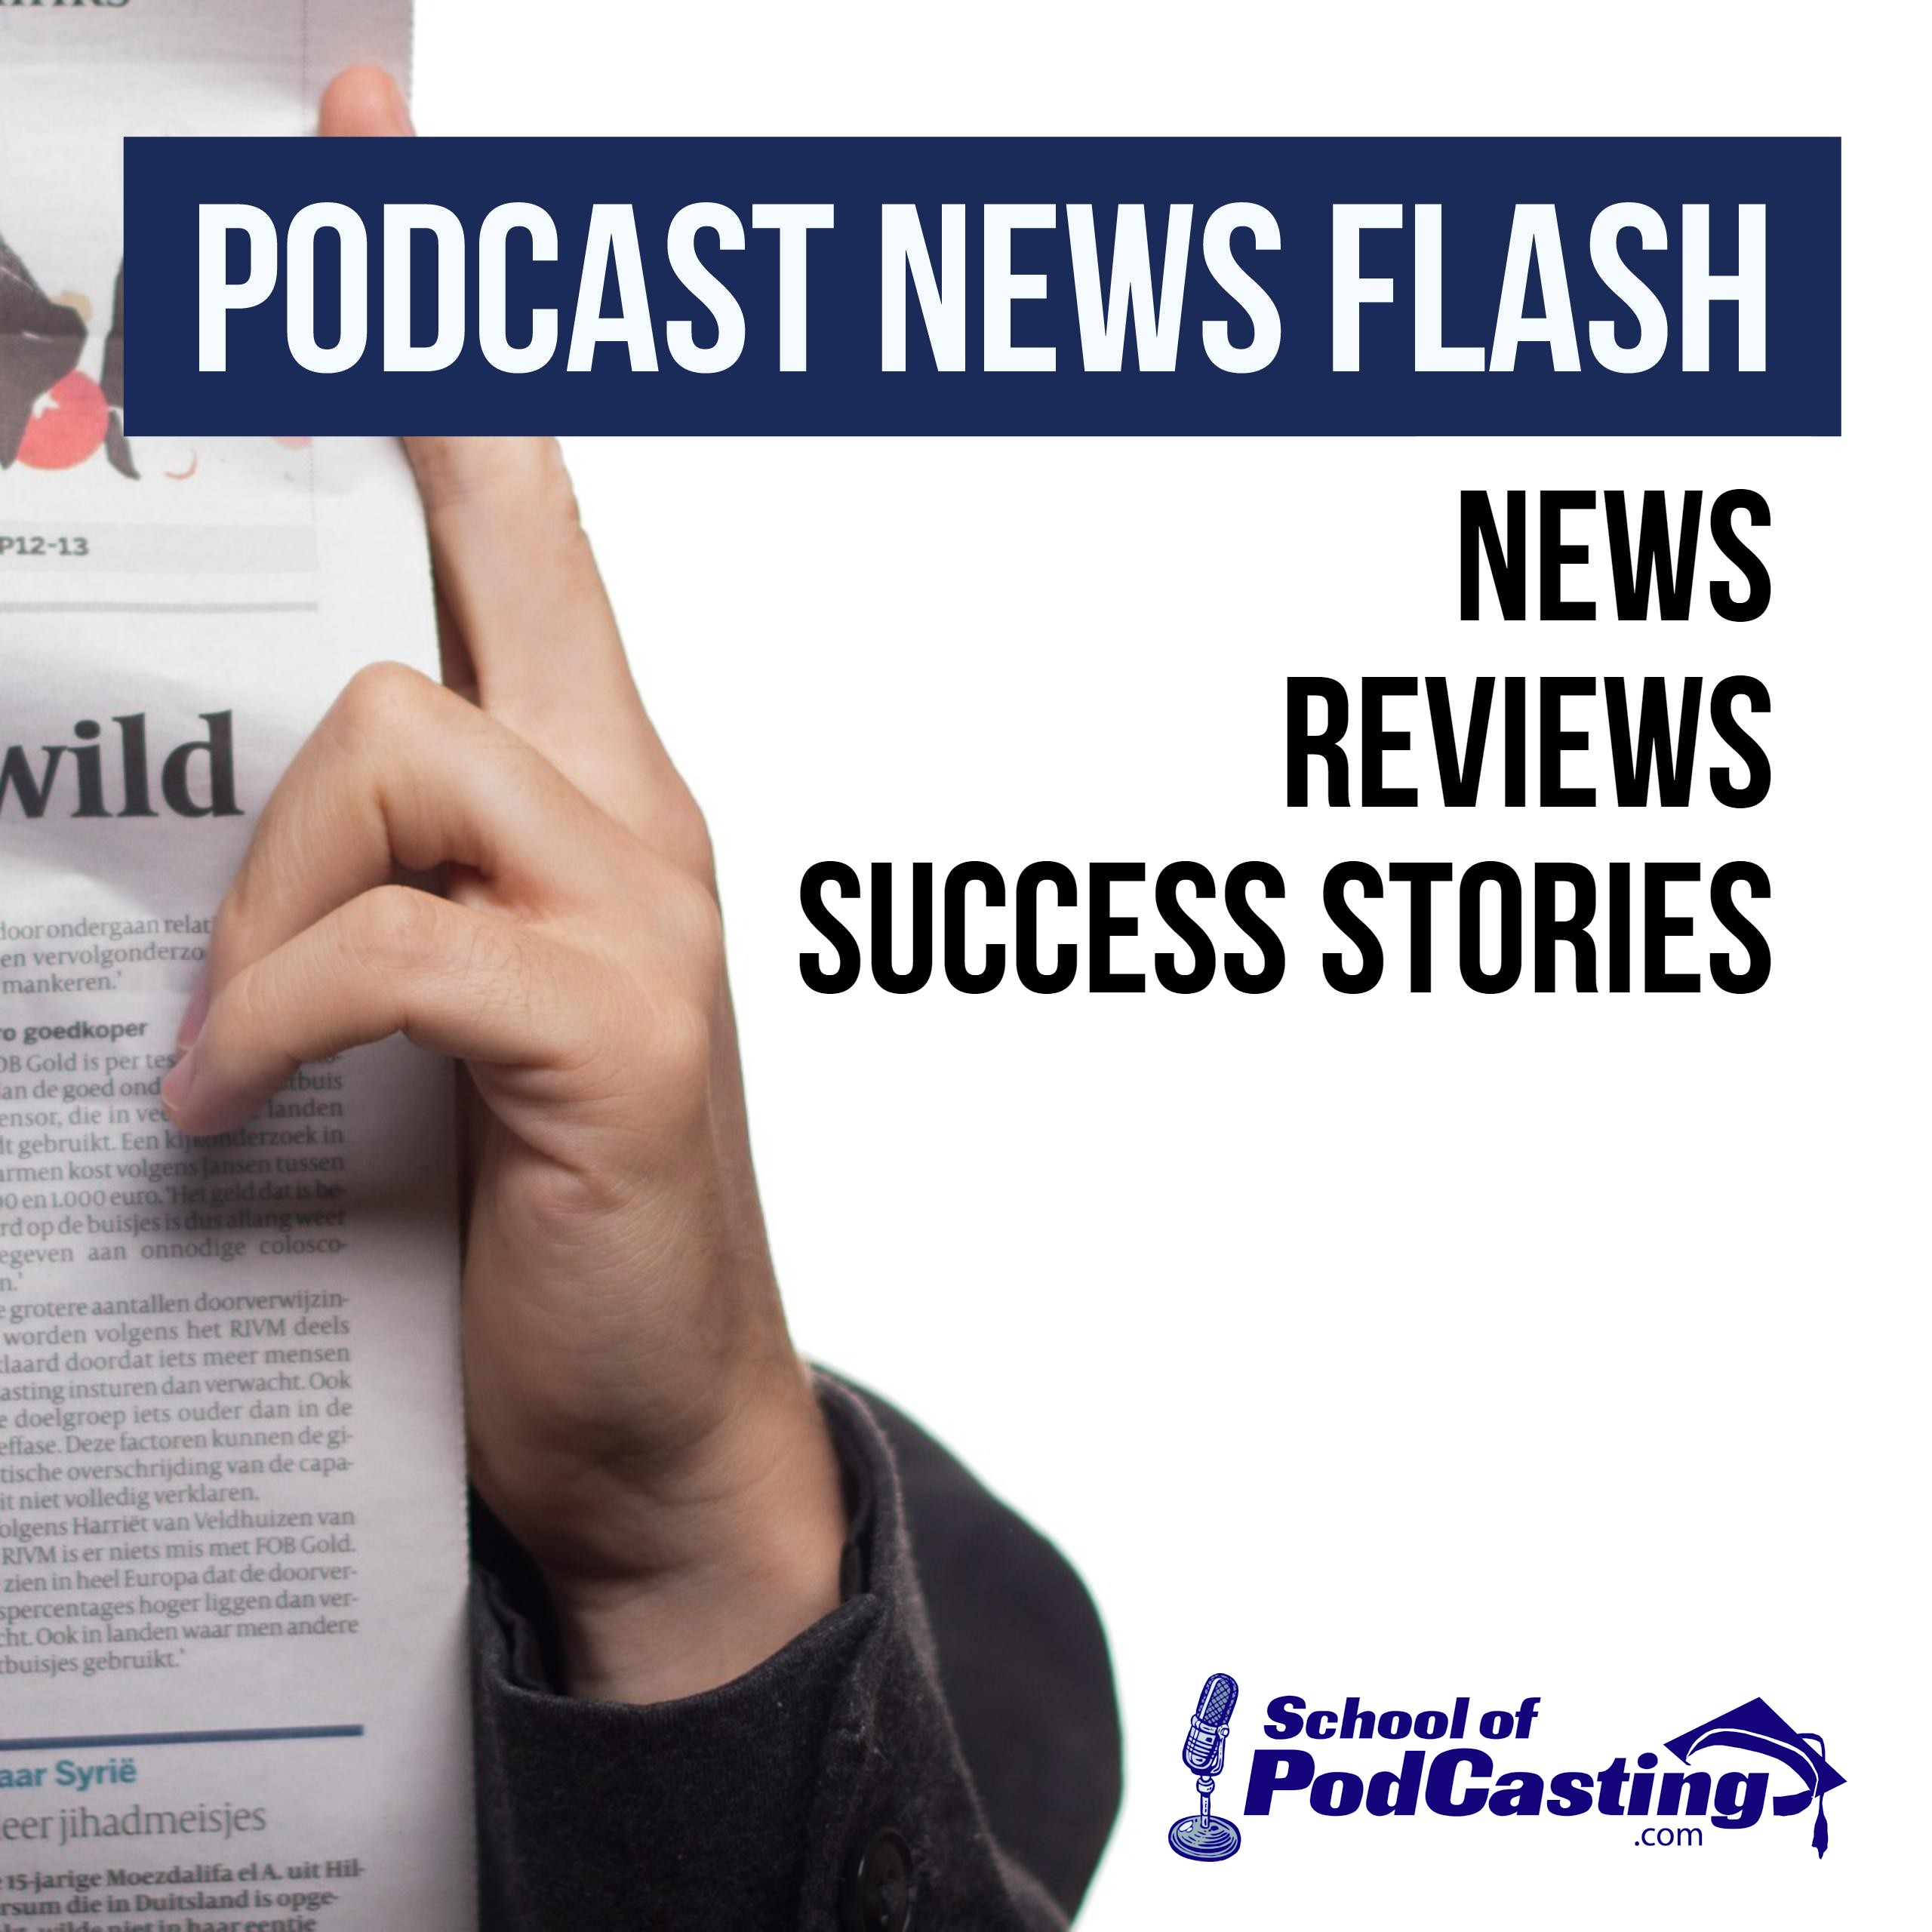 Podcast News Flash | Podcasting News, Reviews, and Success